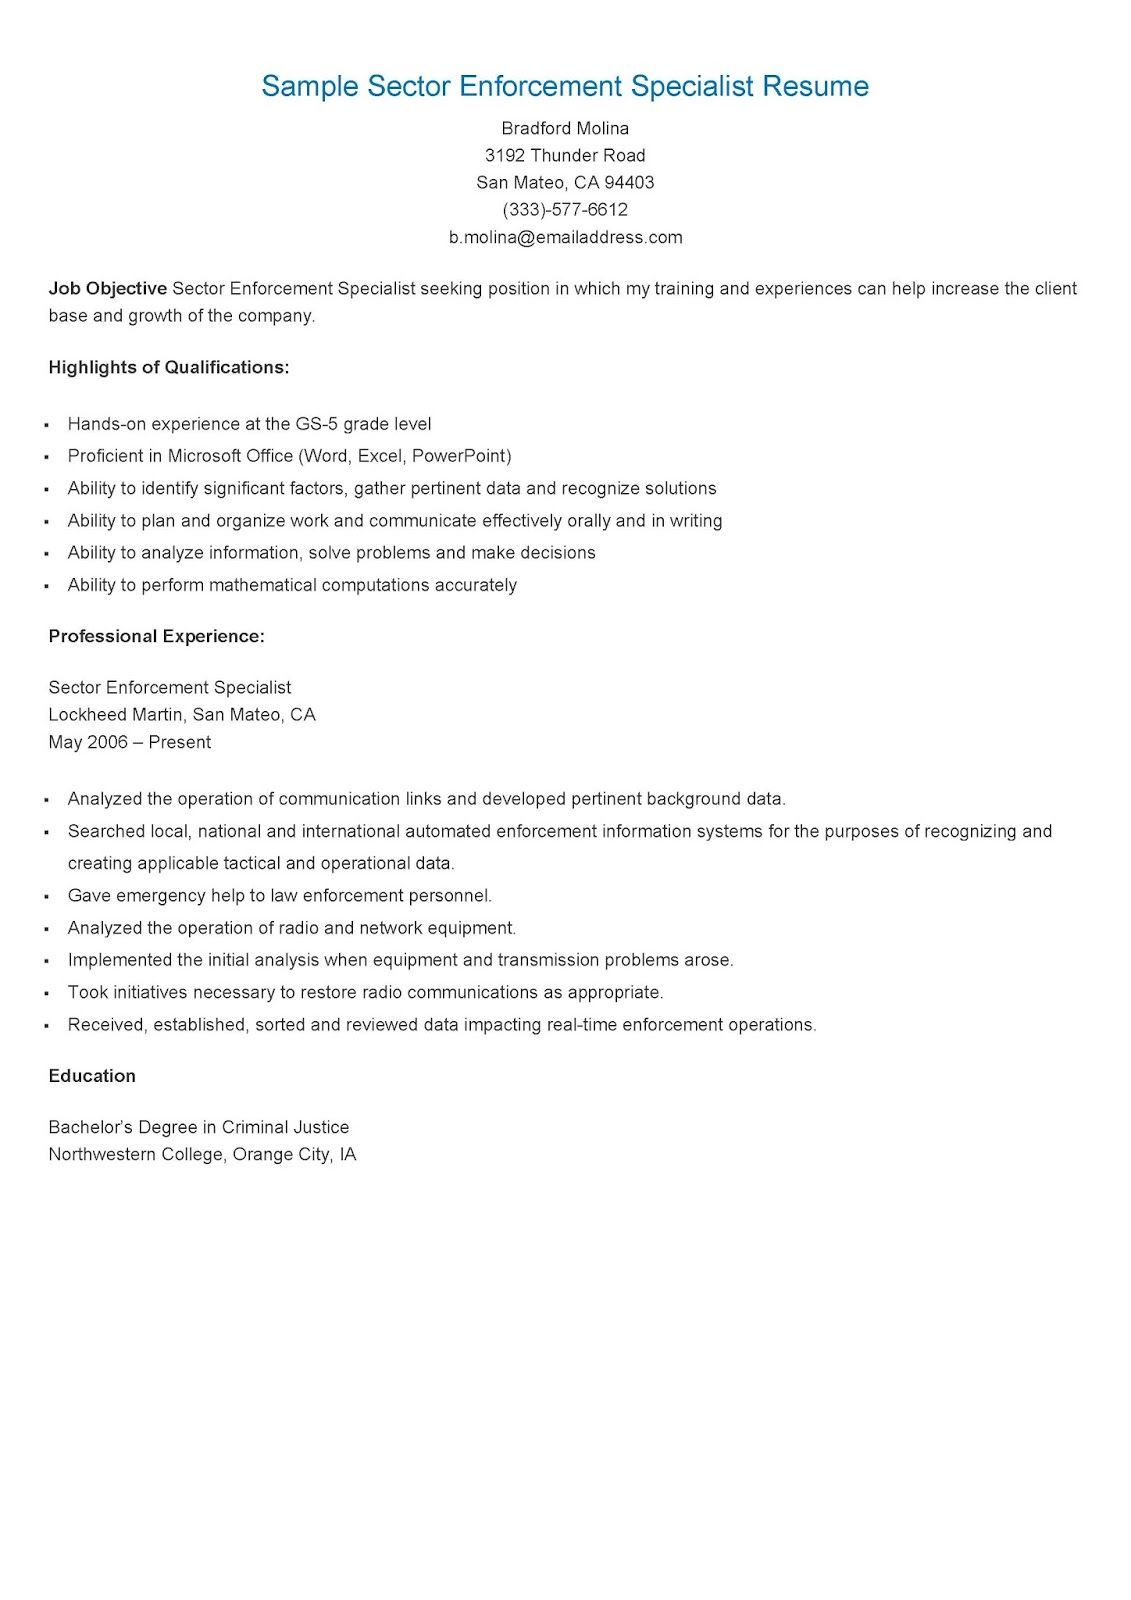 sample sector enforcement specialist resume